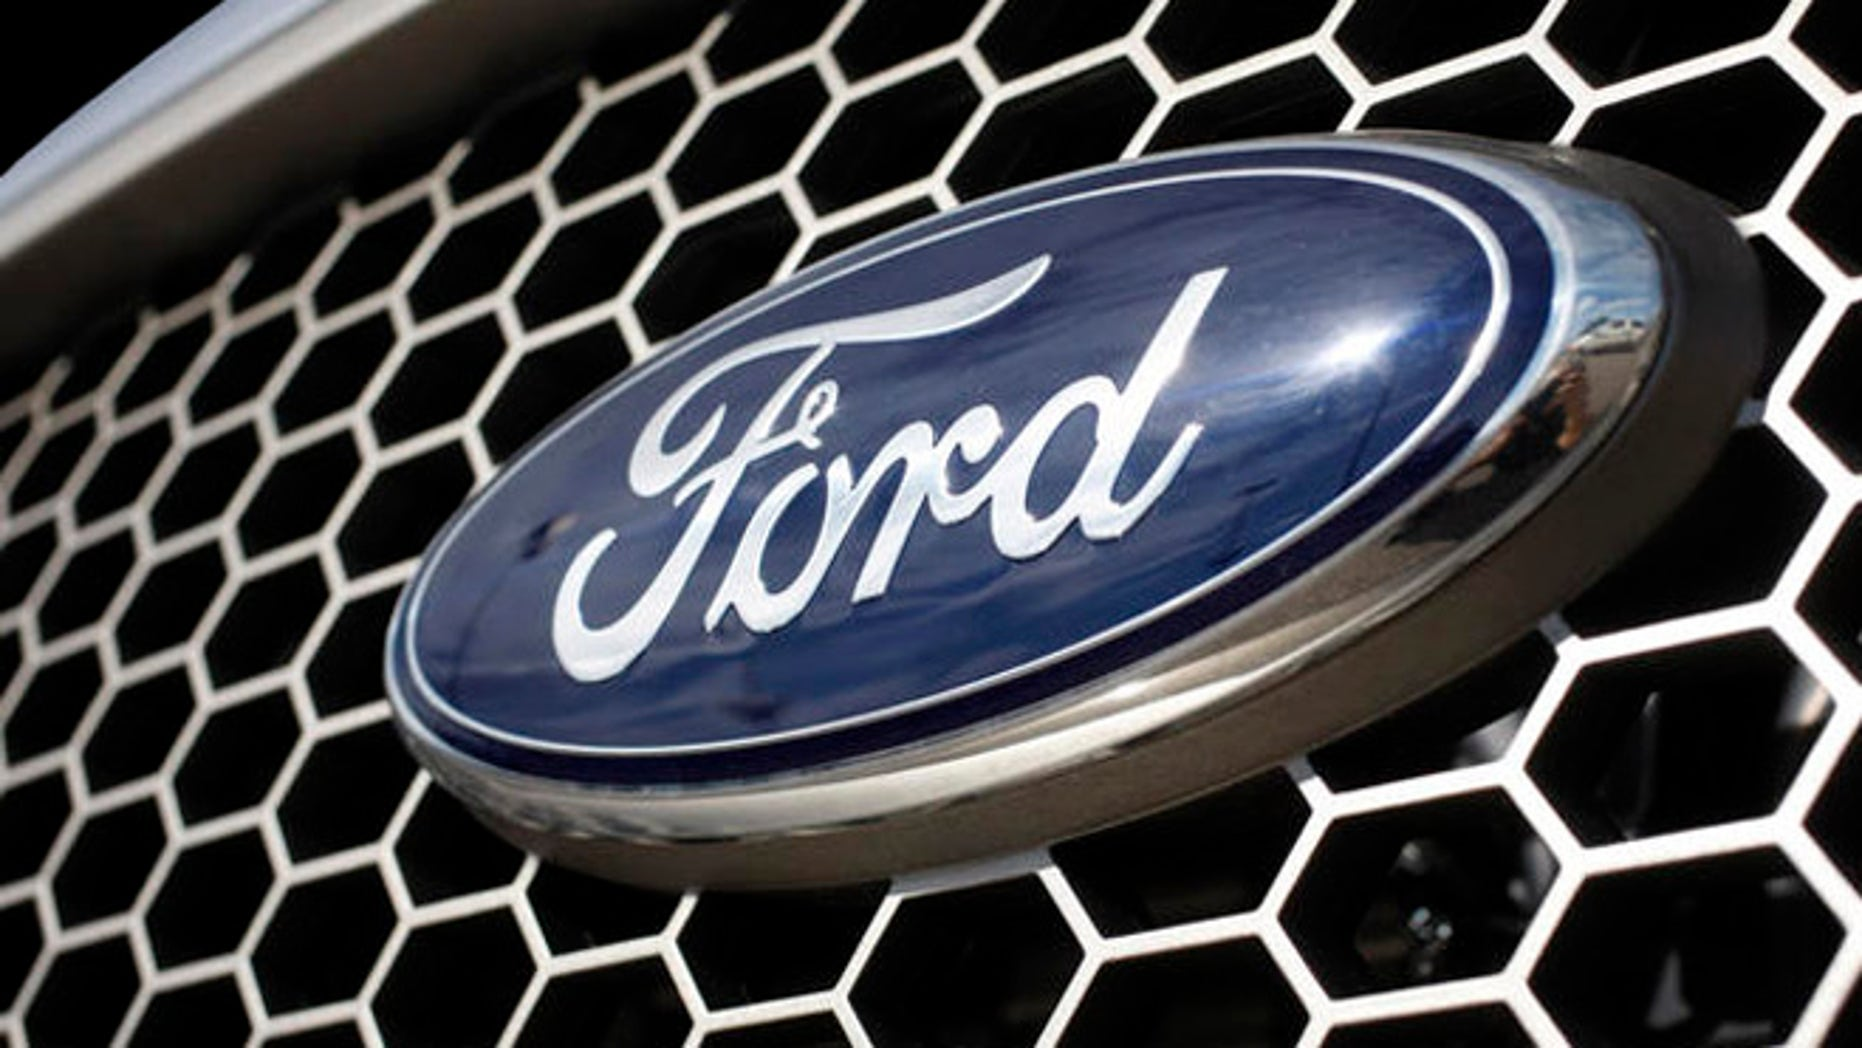 ** FILE ** In this Nov. 2, 2008 file photo, the blue oval logo of Ford Motor Company sits on the crosshatched grille of an unsold 2008 F-150 pickup truck at a Ford dealership in the southeast Denver suburb of Centennial, Colo. Ford Motor Co. on Monday, April 6, 2009 said it completed tender offers that will reduce its debt by 38 percent and shave millions of dollars off its interest costs.  (AP Photo/David Zalubowski, file)